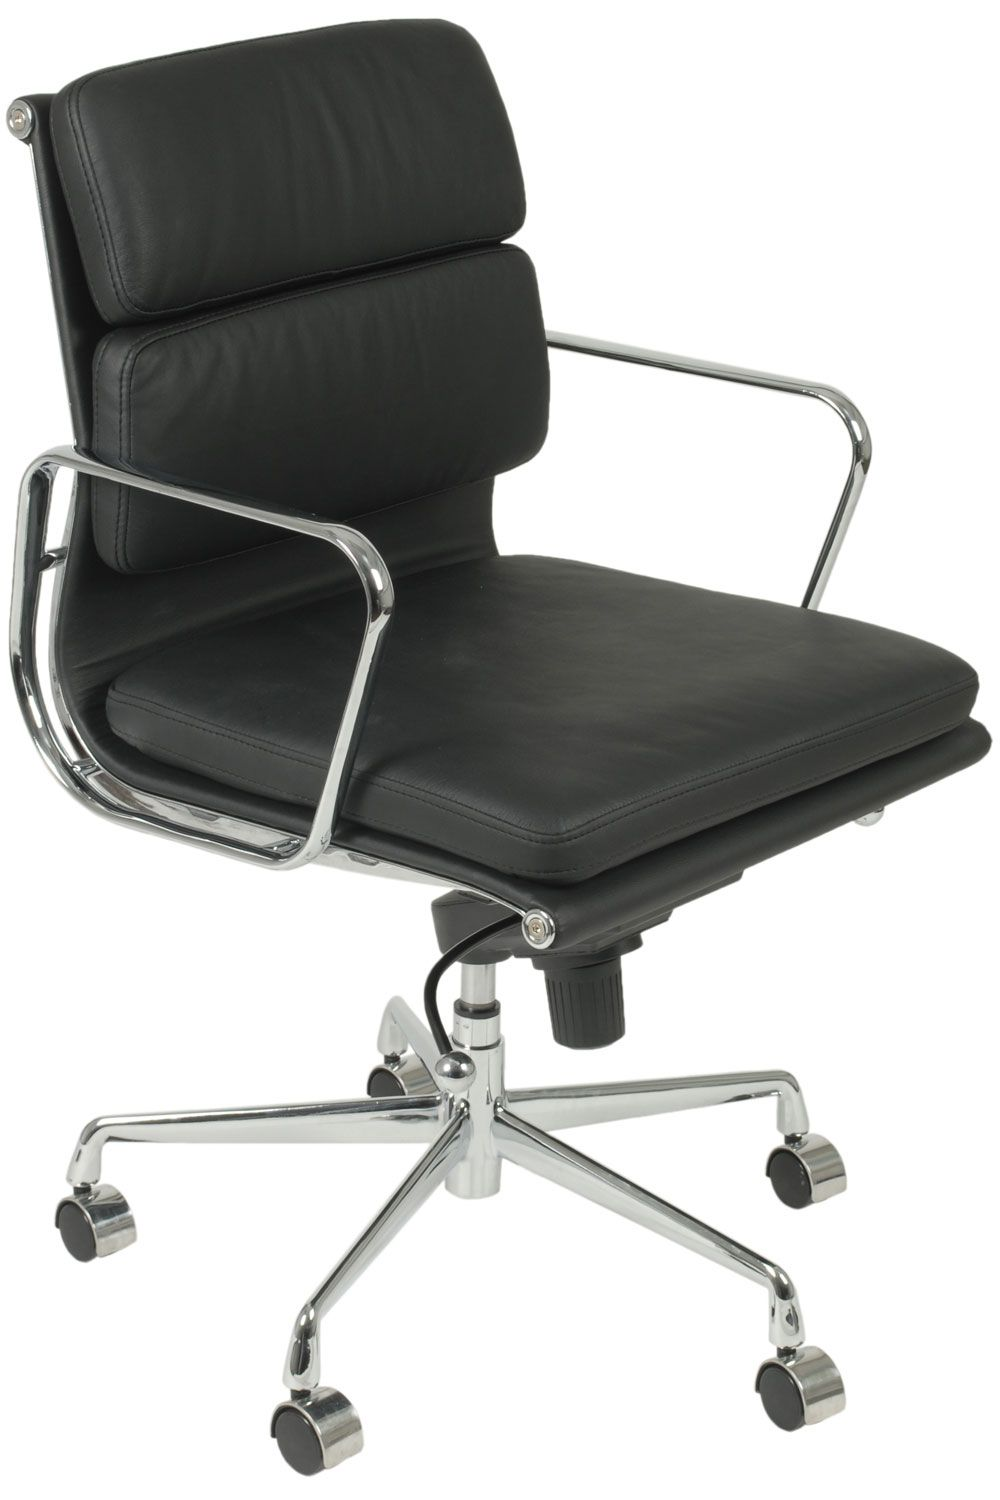 Darrel low back office chair office chair eames